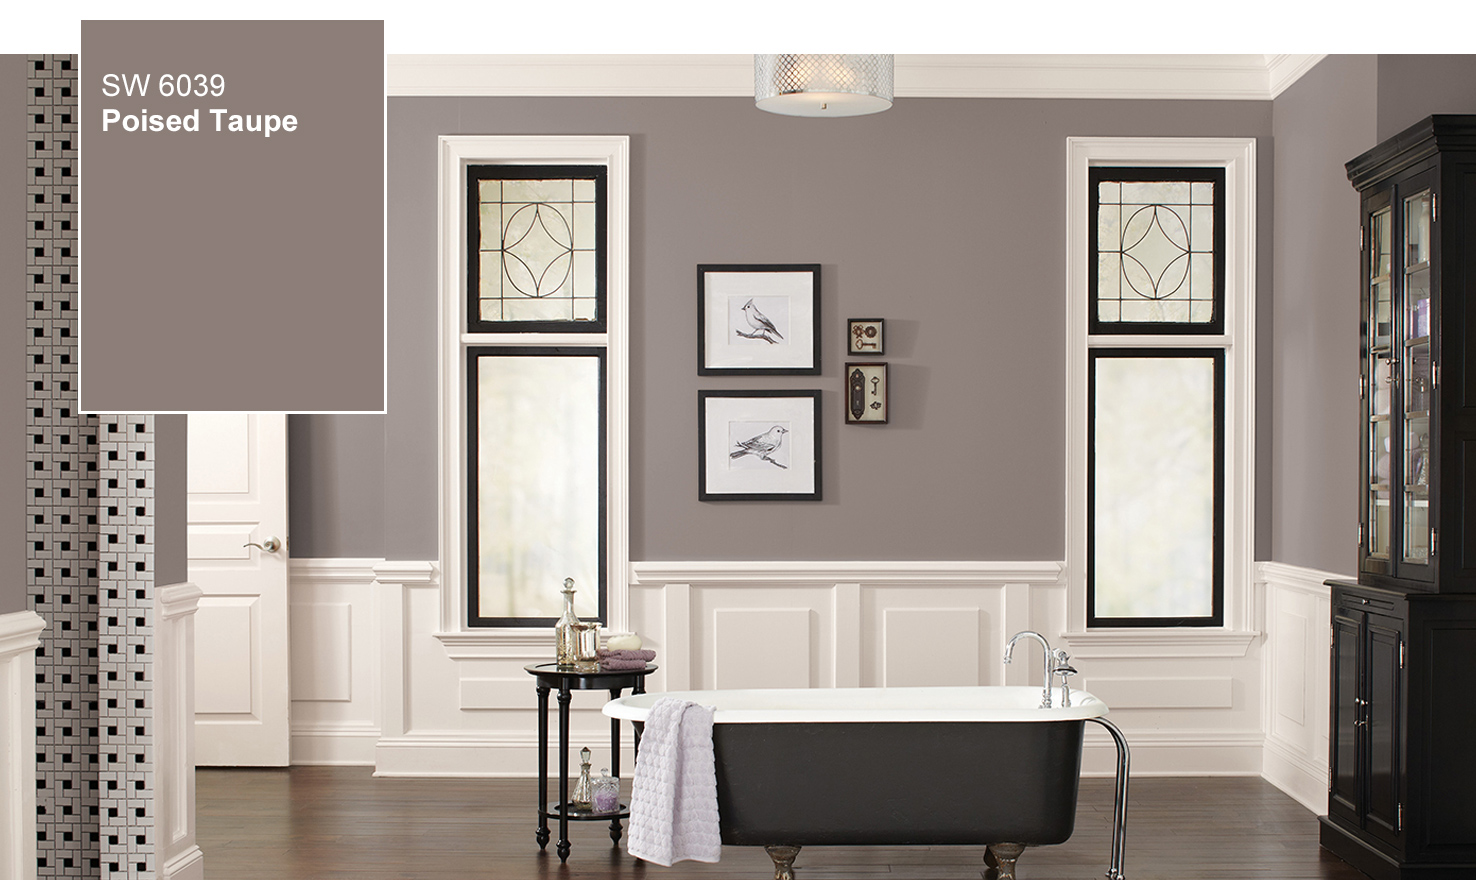 introducing the color of the year poised taupe sw by sw diy coty2 17 lp